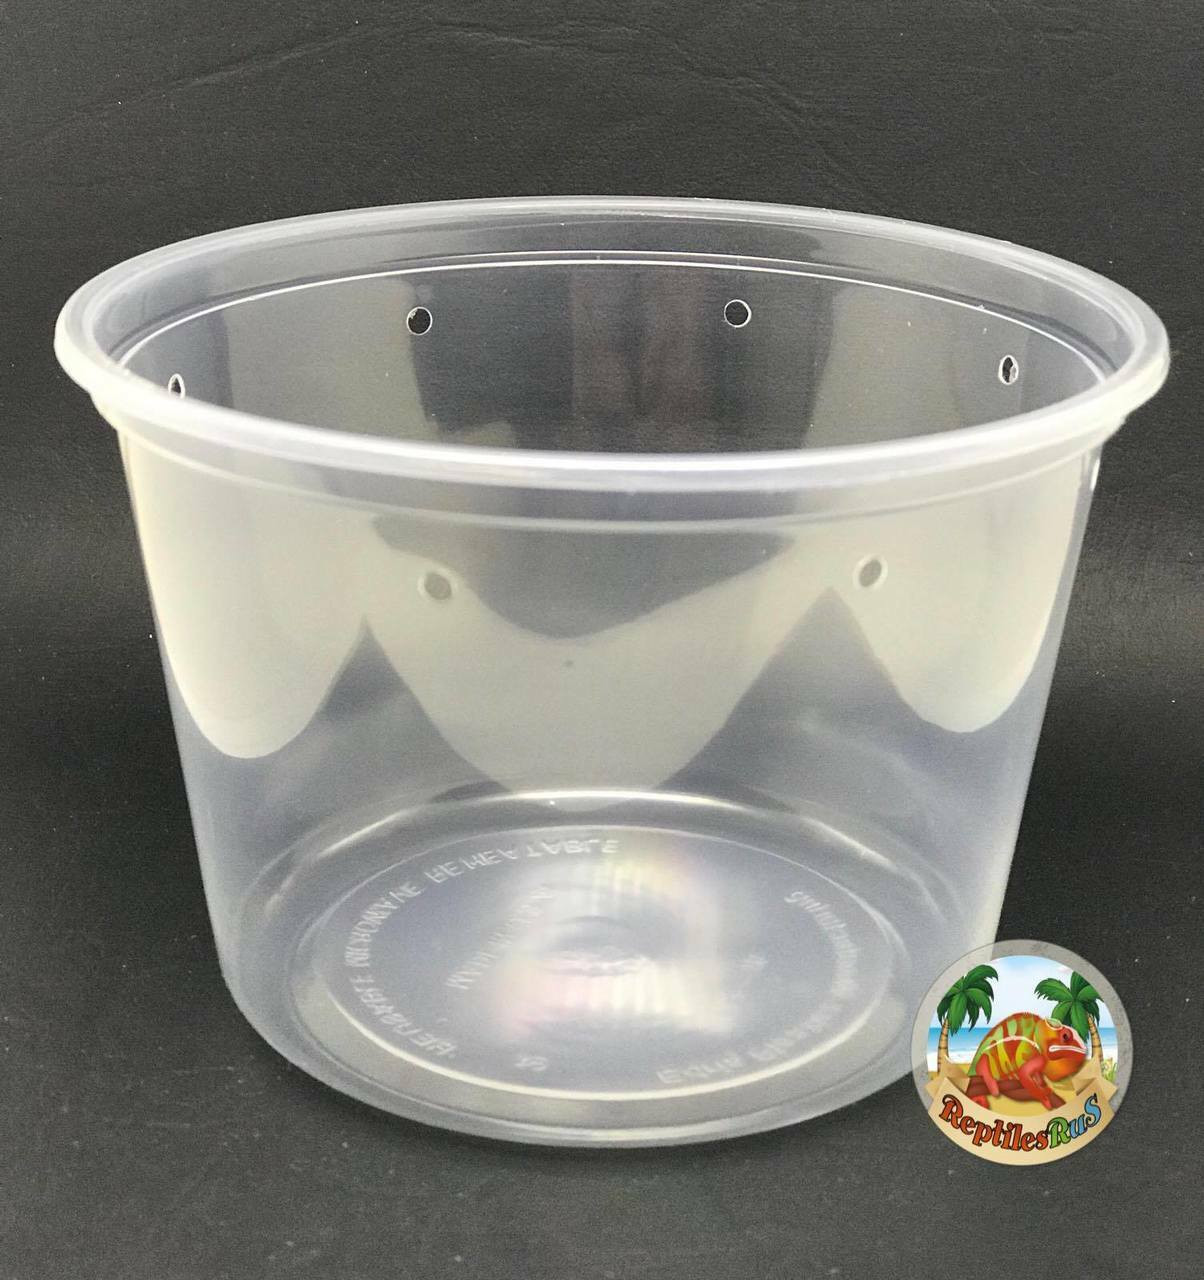 All Things Reptile Slightly Opaque 4.5 Pre-punched Deli Cup 16oz 10 PACK